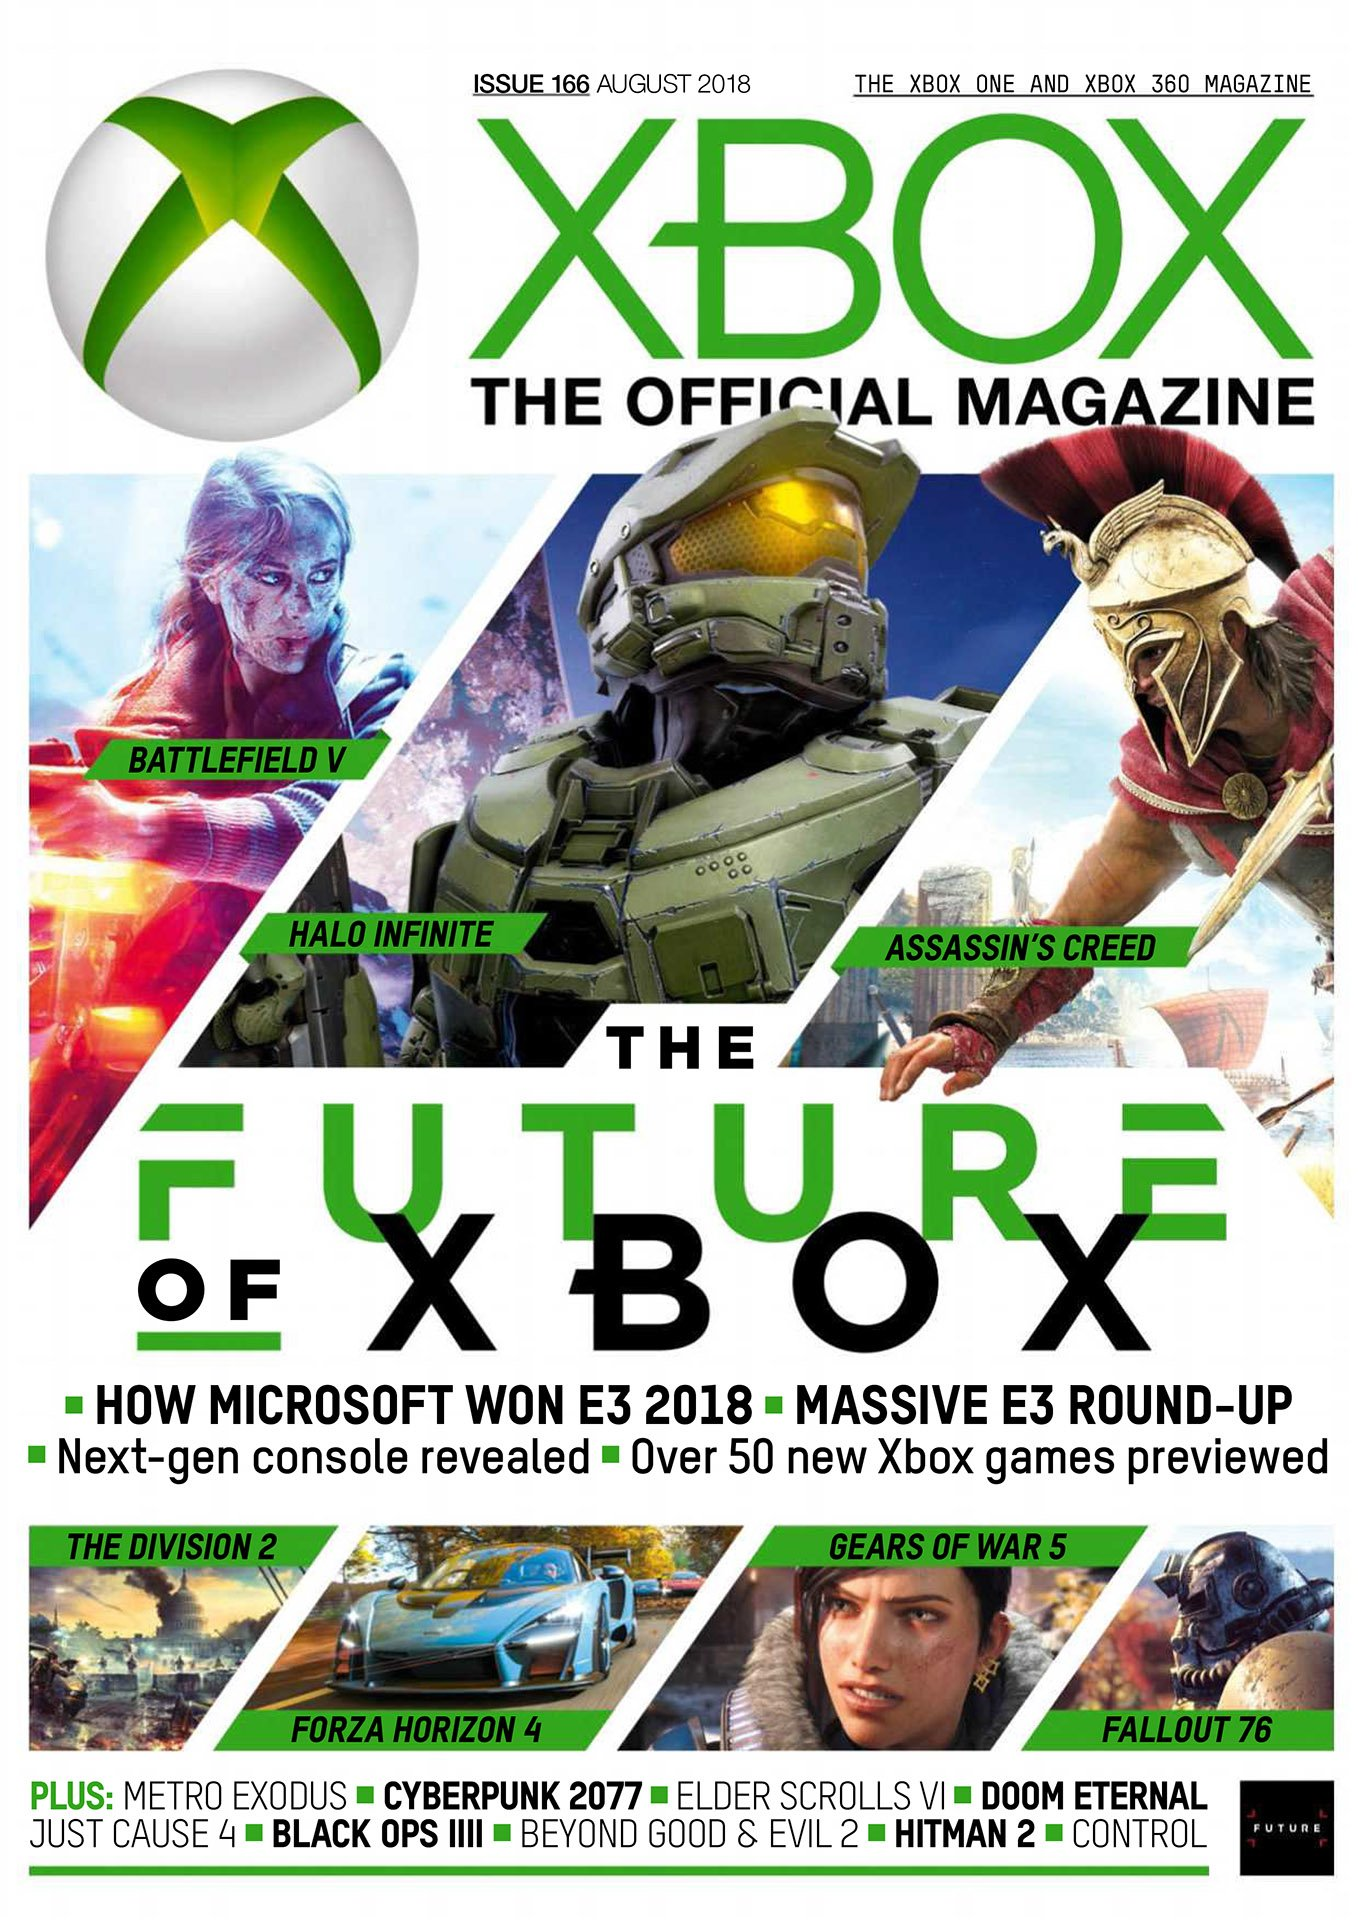 XBOX The Official Magazine Issue 166 (August 2018)